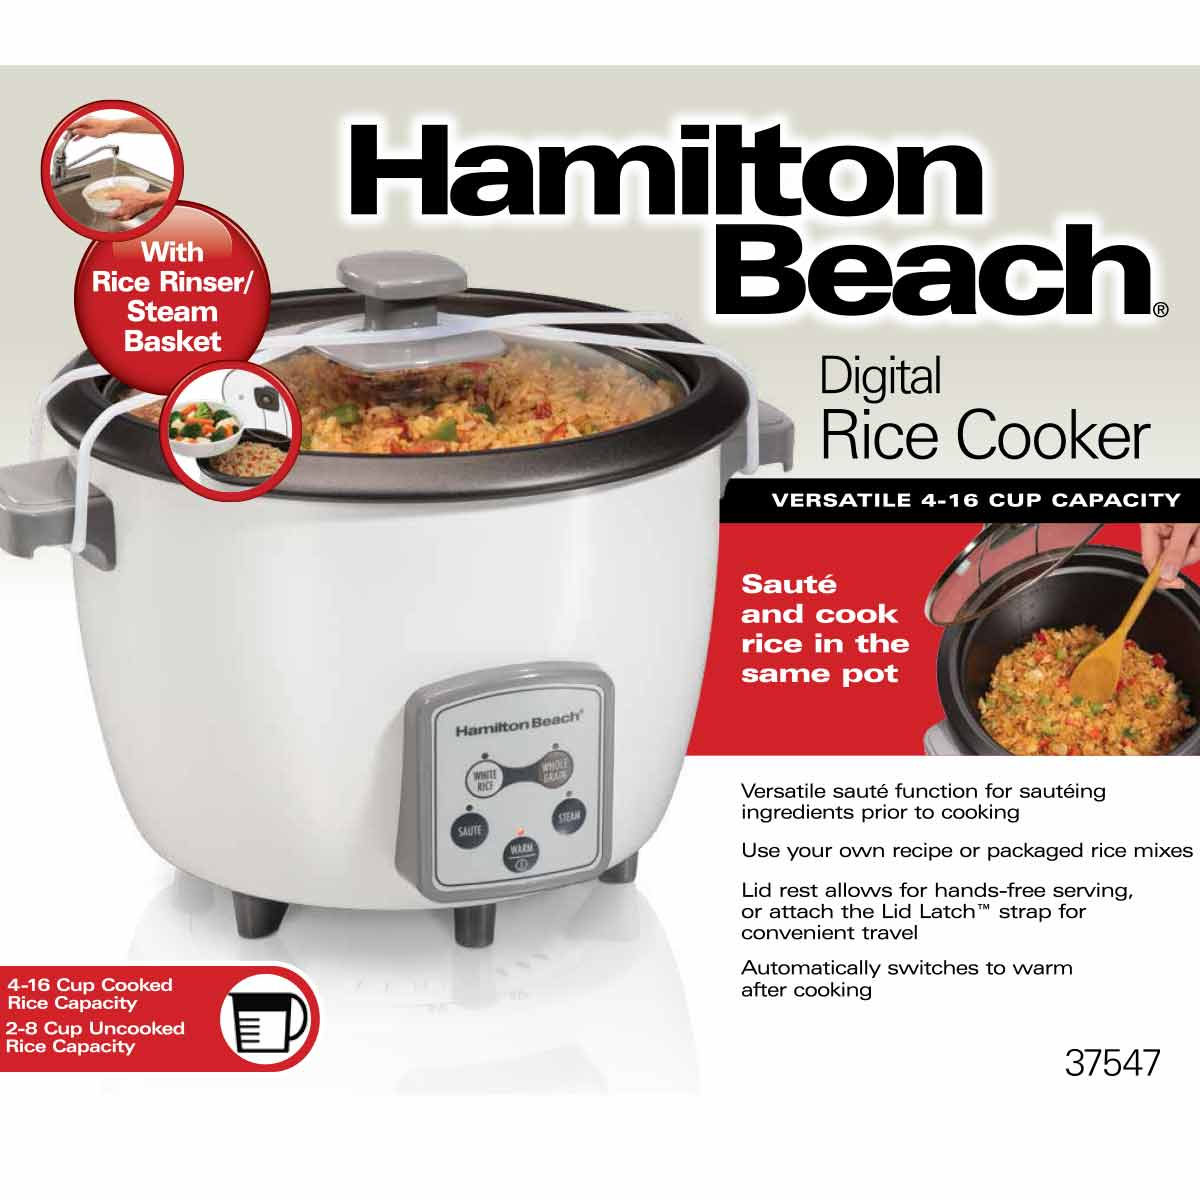 4-16 Cup Capacity (Cooked) Digital Rice Cooker (37547)